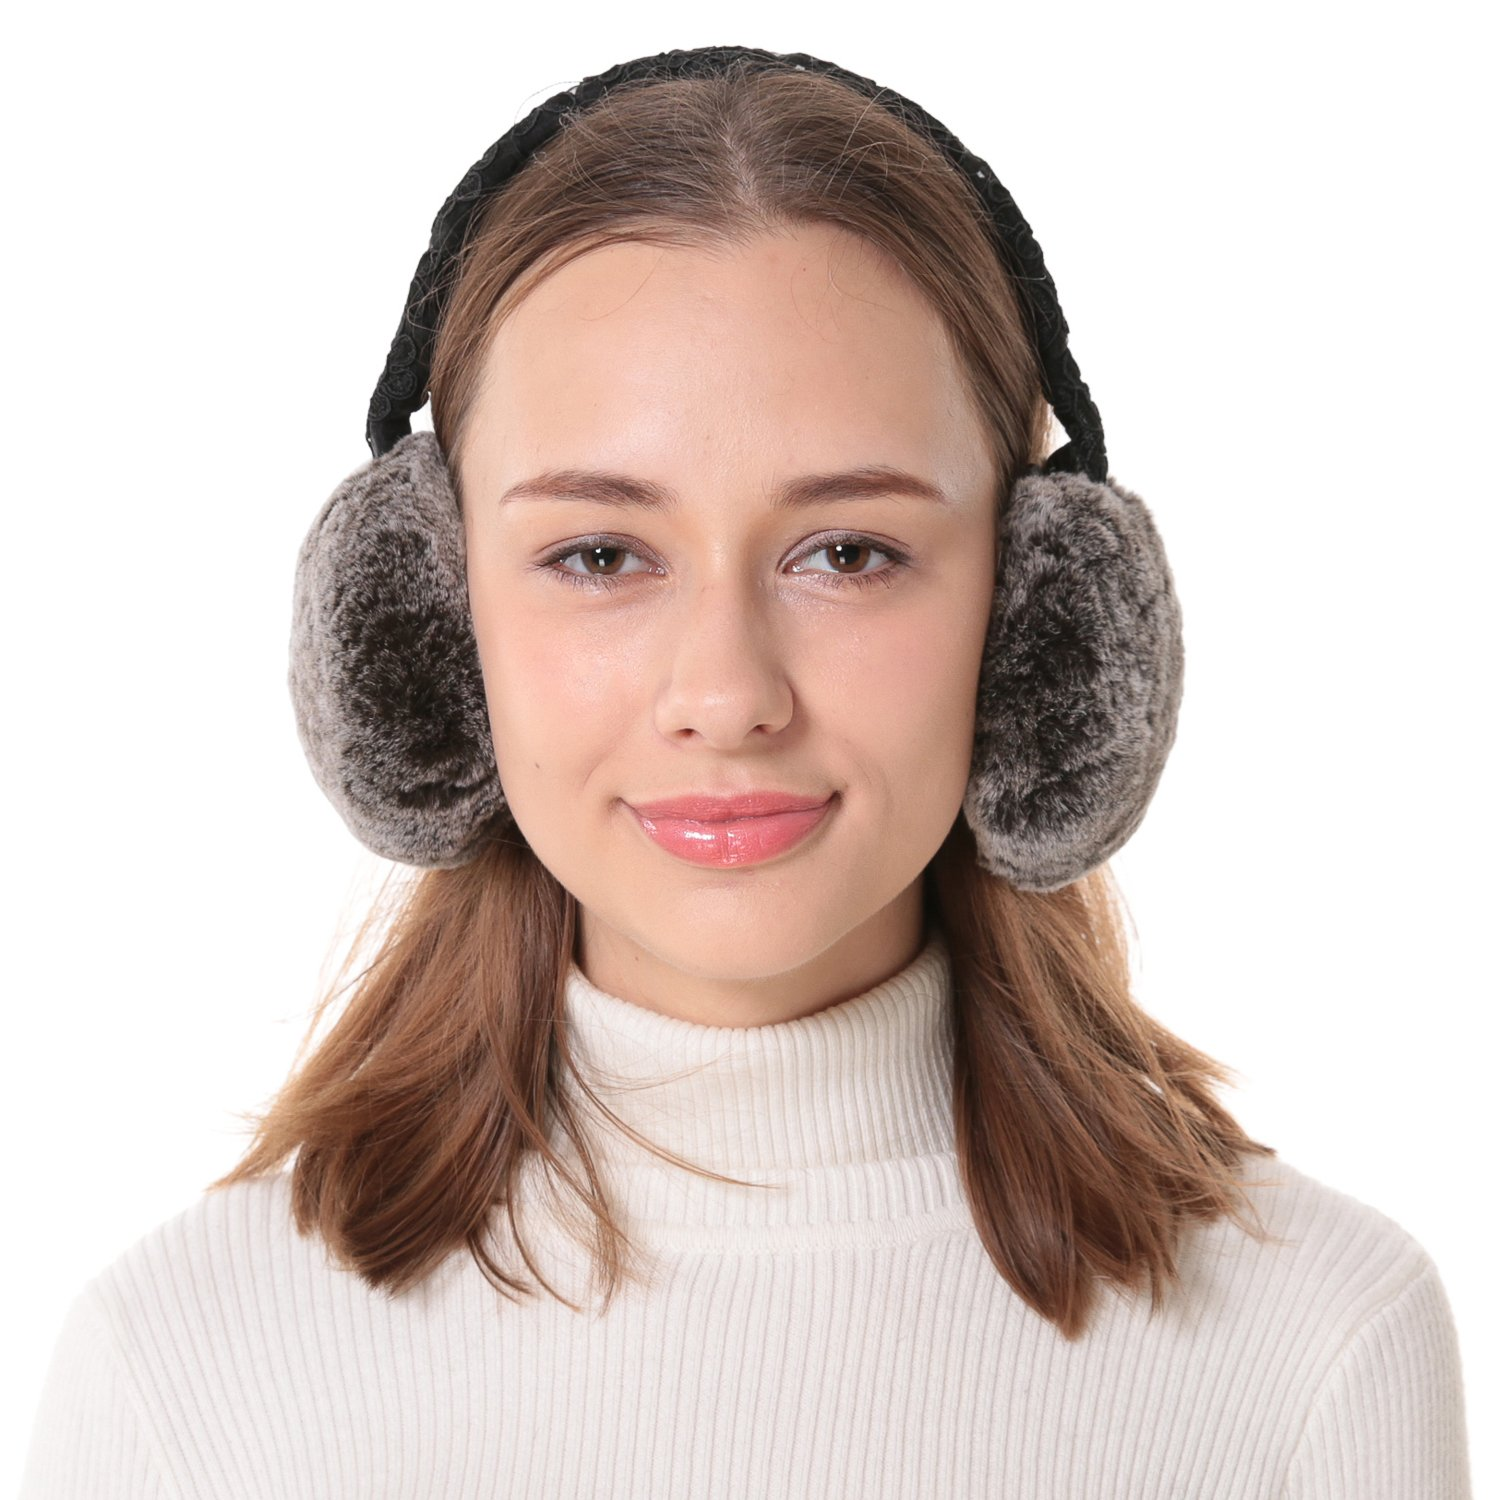 Nice Glory Women's Rex Rabbit Fur Embroidered Lace Band Adjustable Earmuffs Blush.